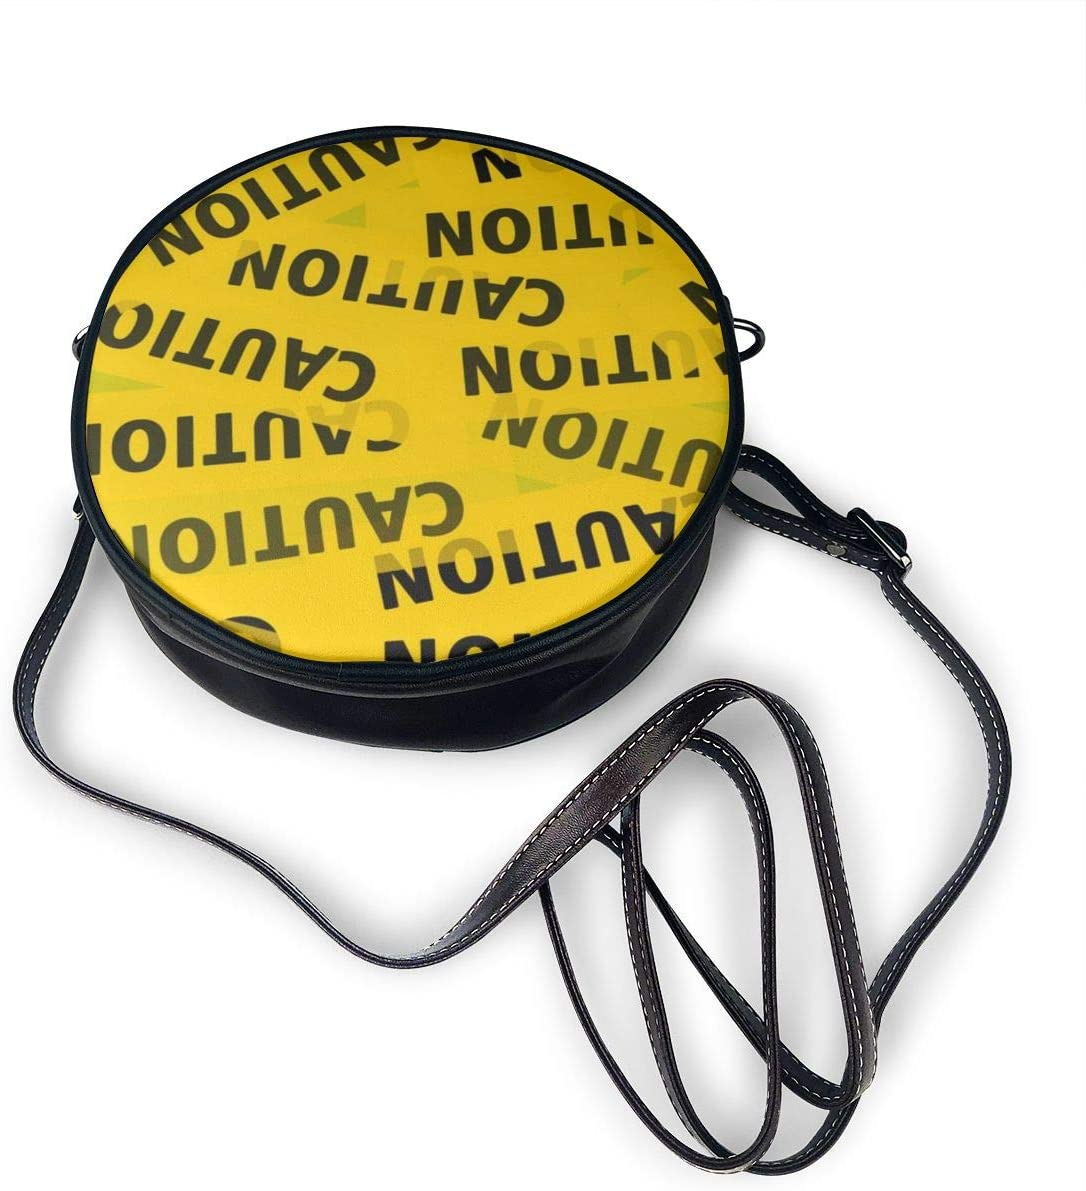 Caution Tape Womens Round Messenger Shoulder Bags Small Wallet School Business Work Bag